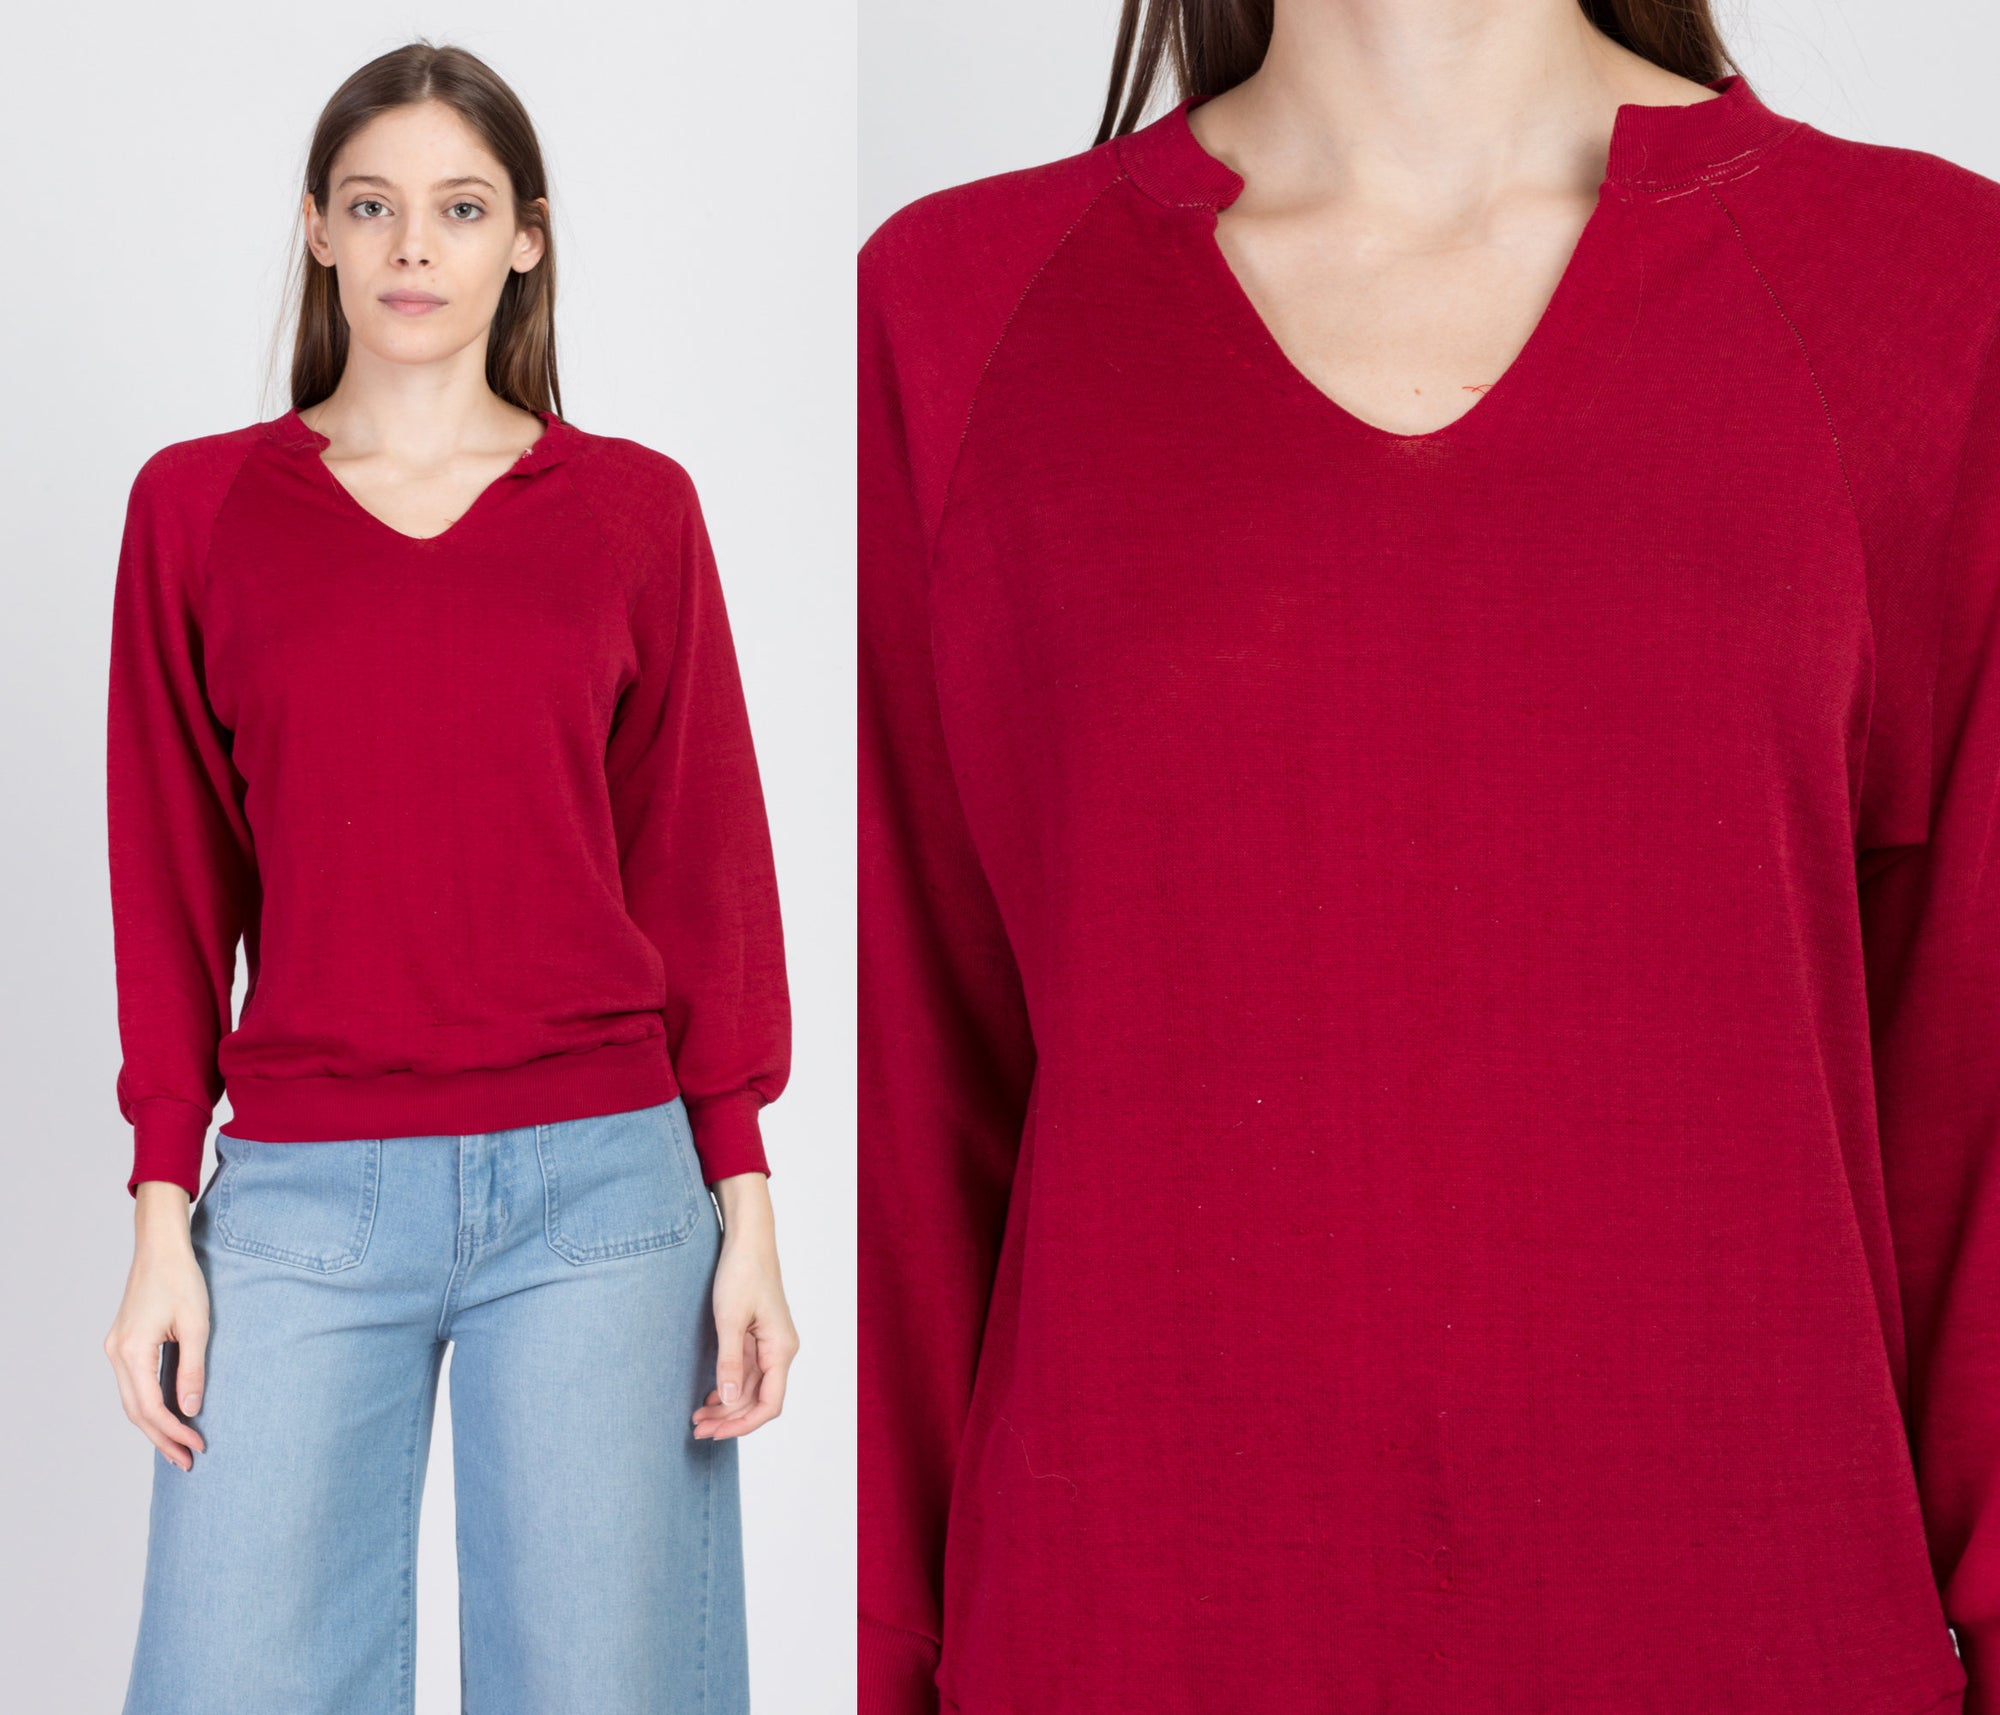 80s Red V Neck Sweatshirt - Medium